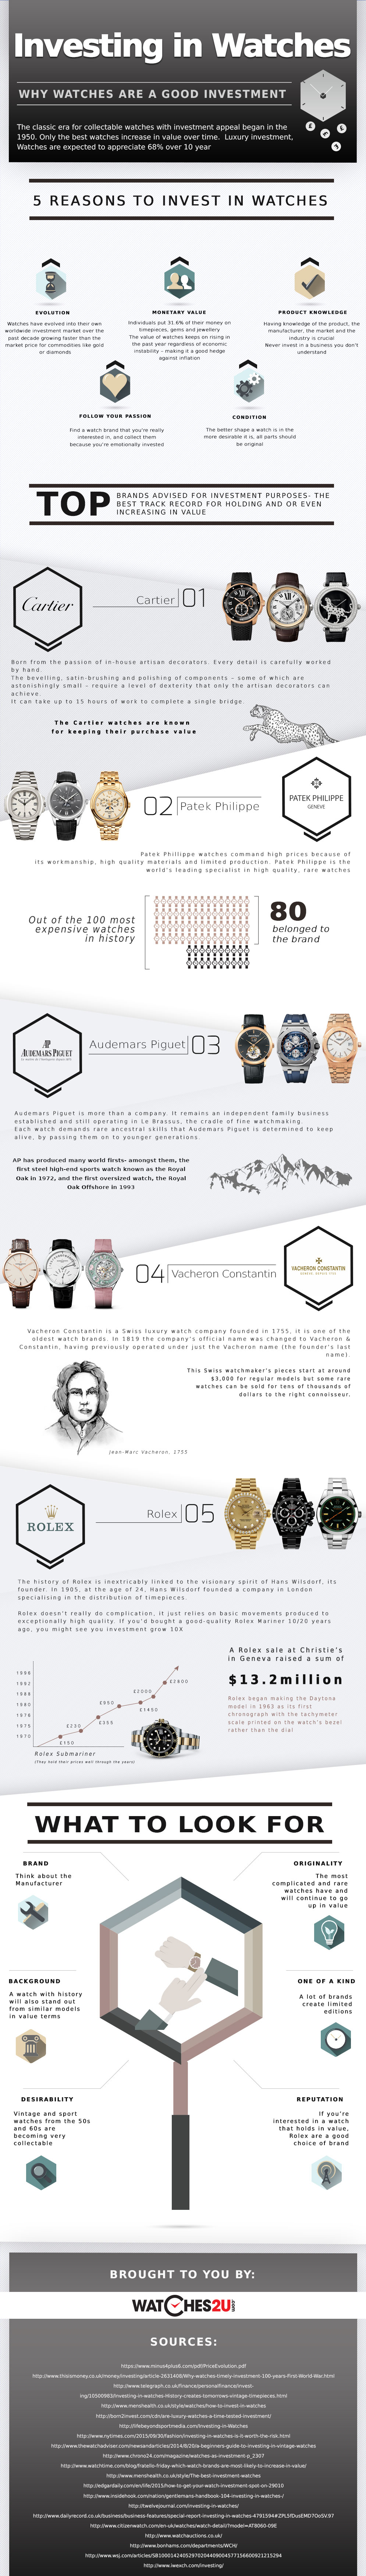 Investing In Watches